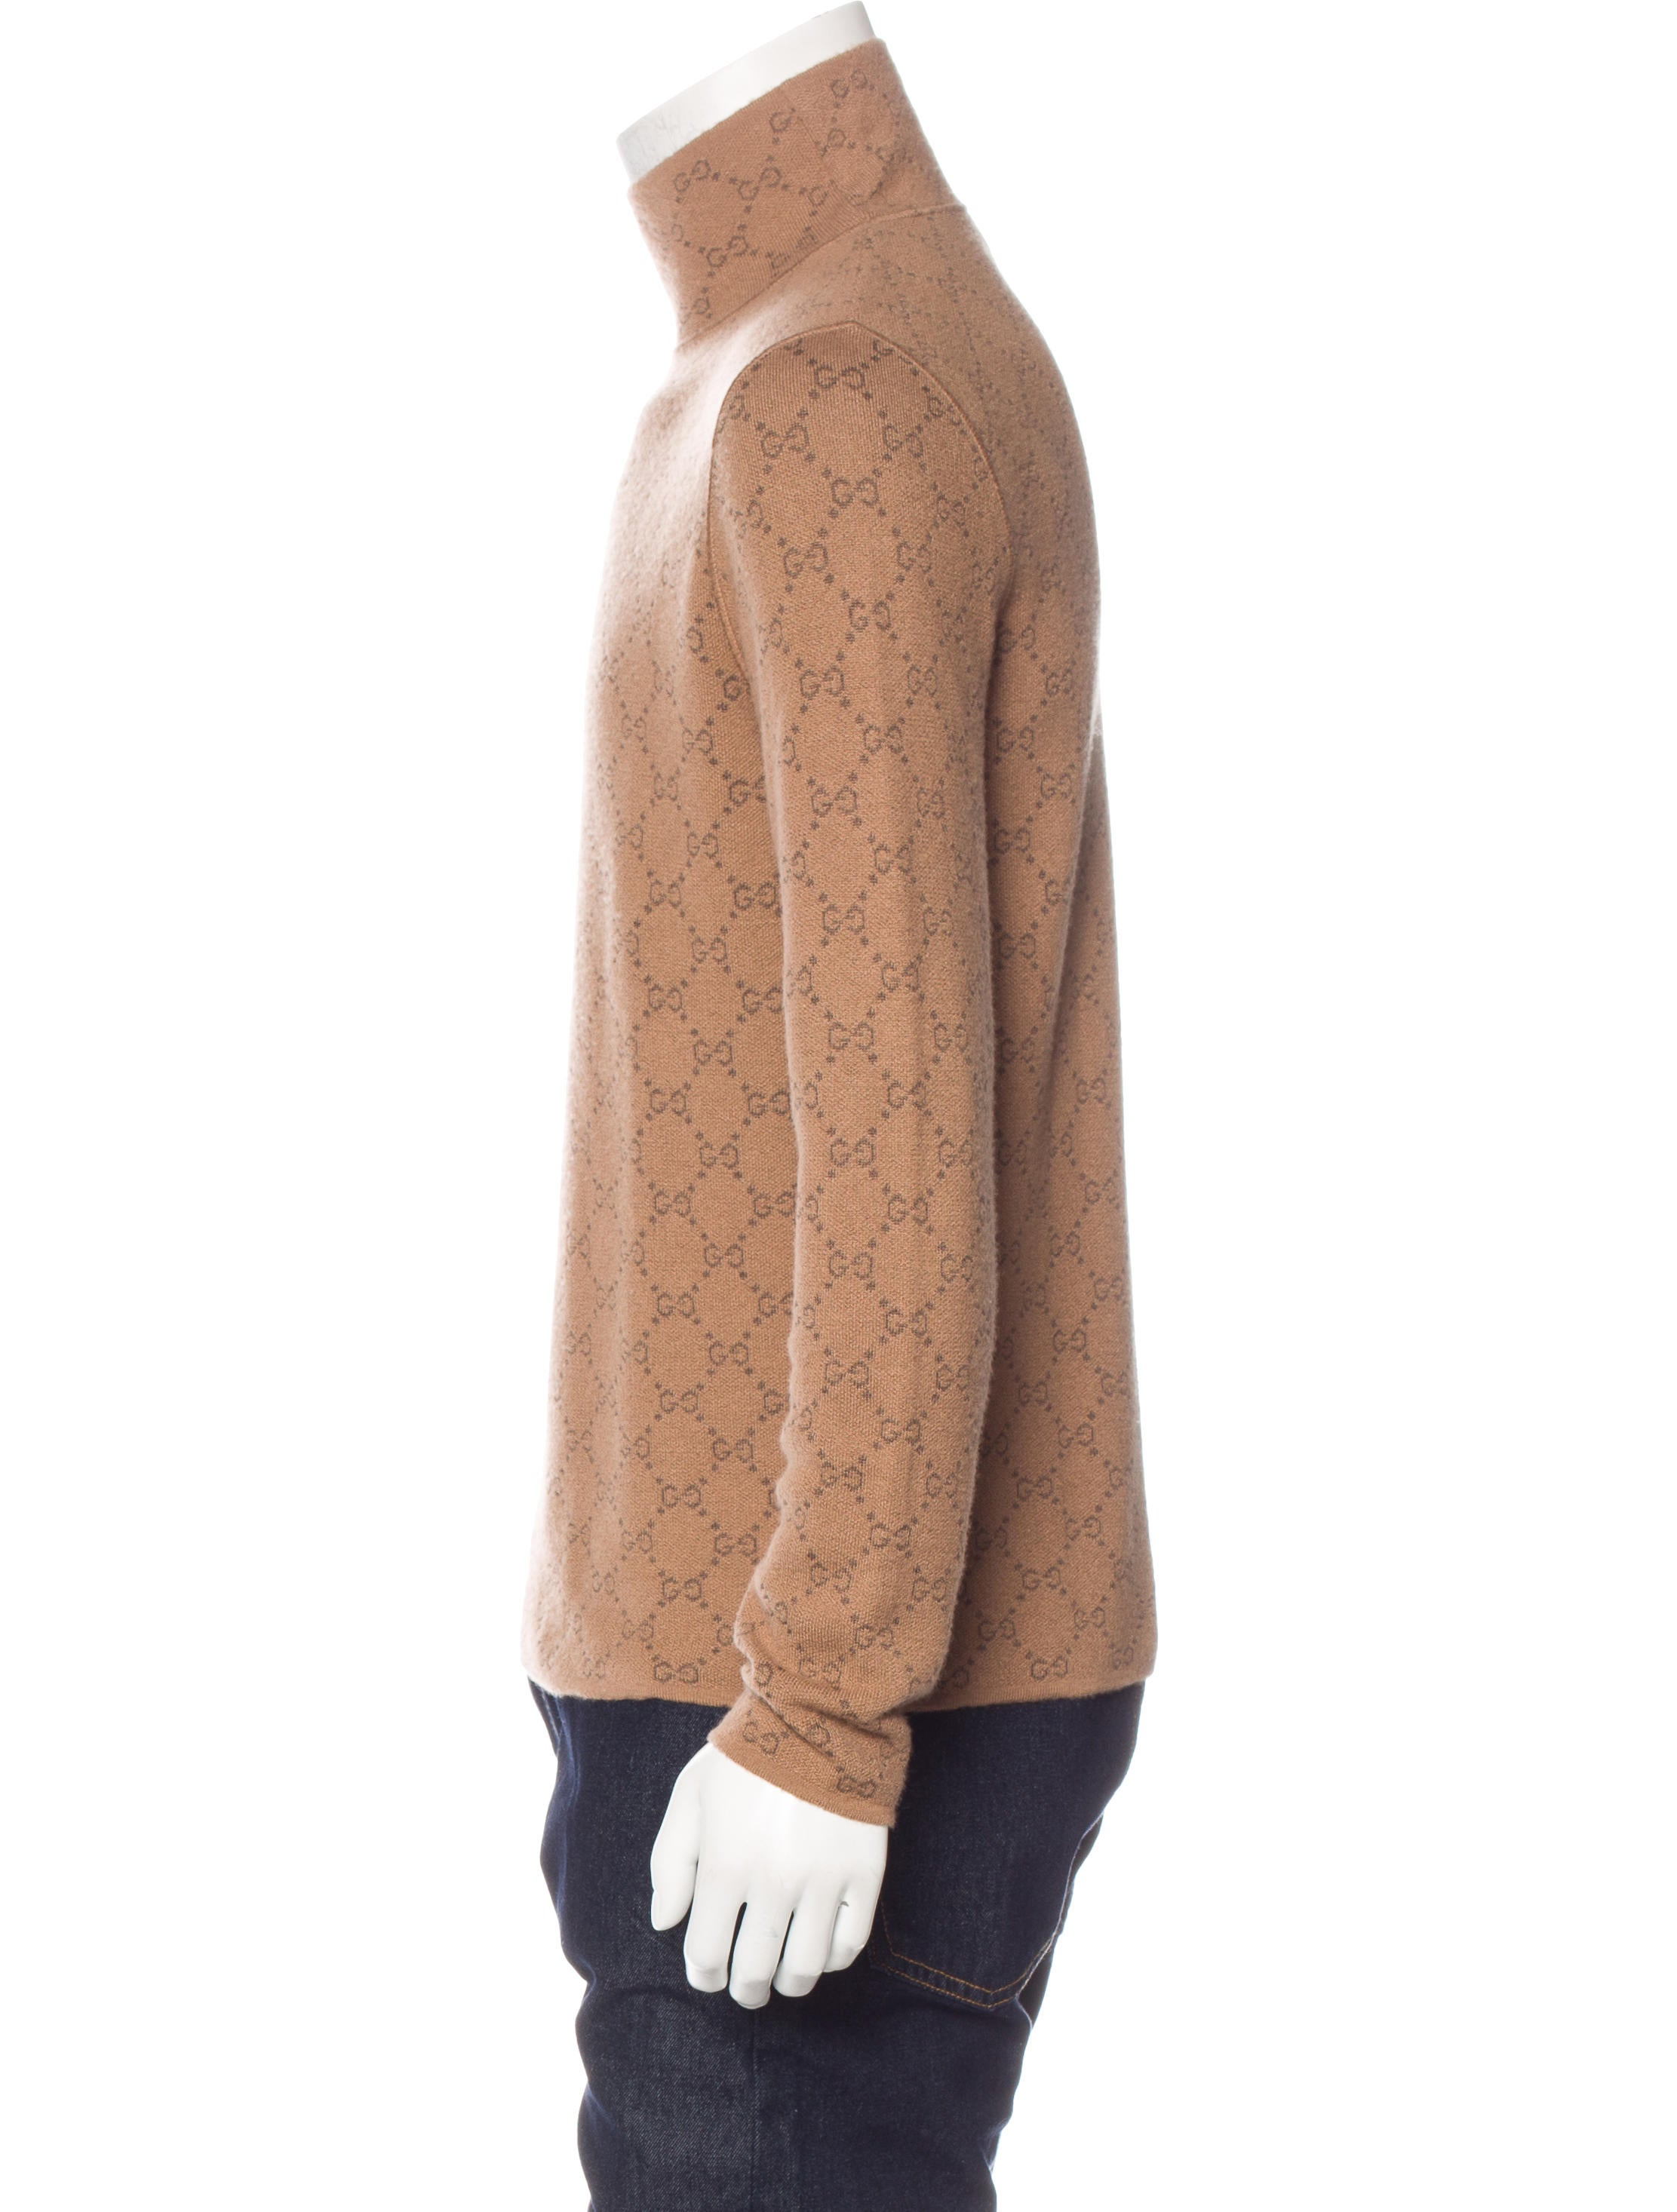 Gucci Cashmere Turtleneck Sweater - Clothing